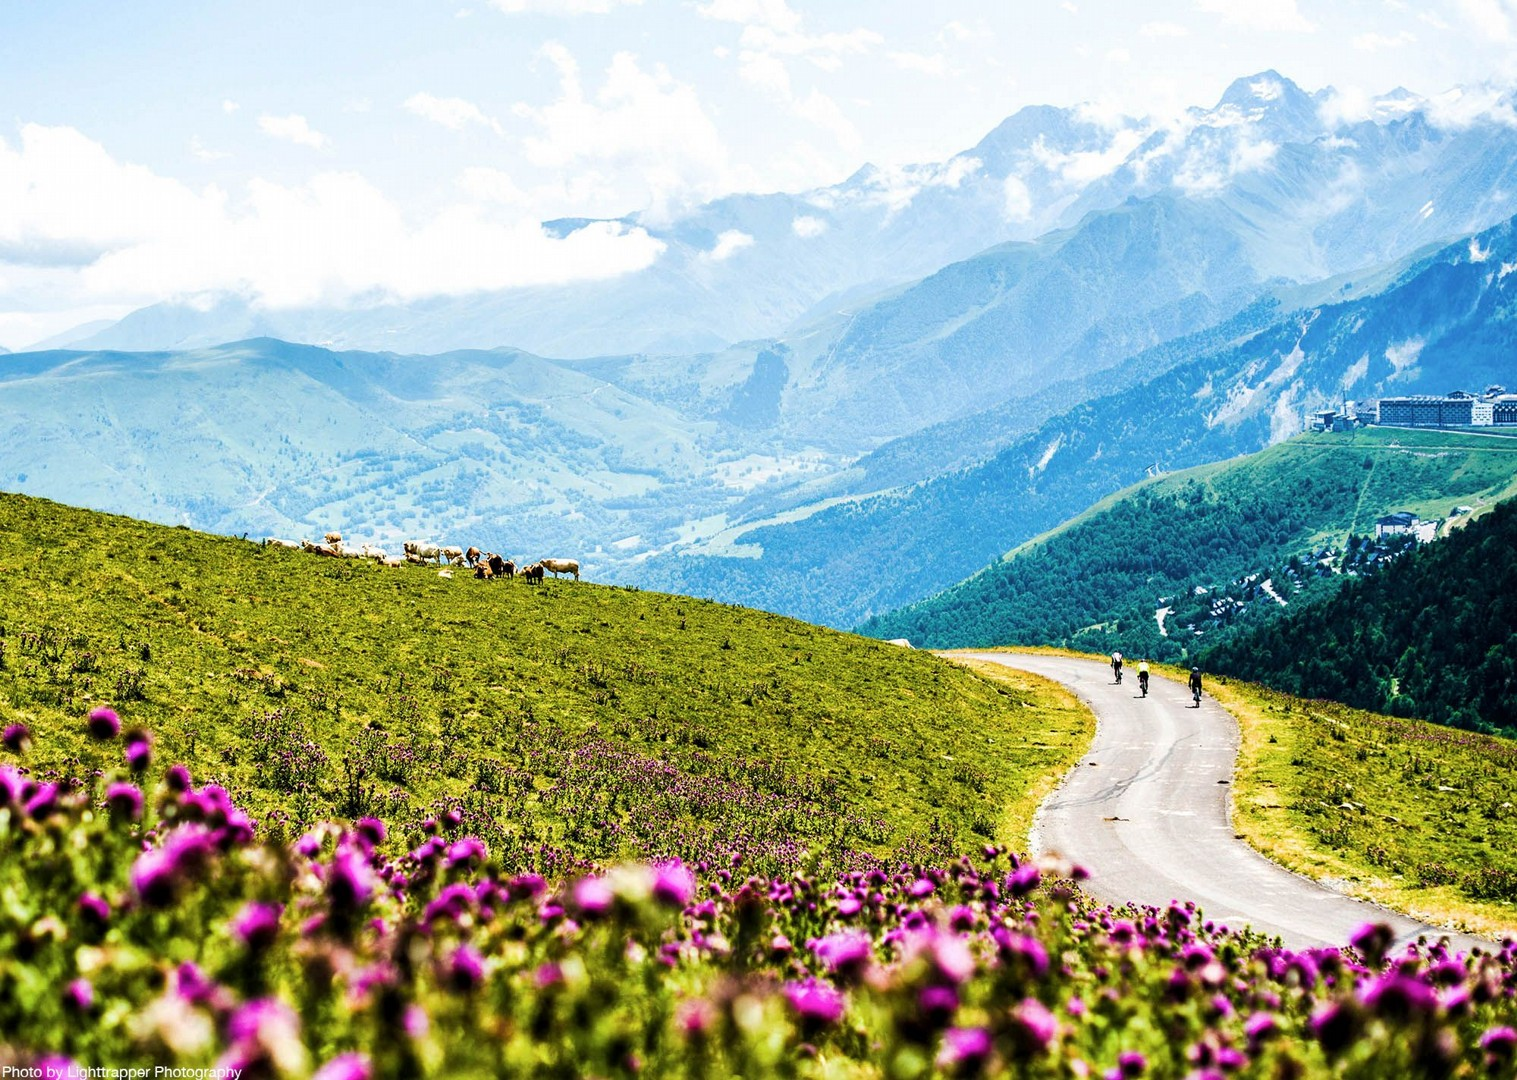 stunning-scenery-pyrenees-guided-cycling-in-france.jpg - France - Pyrenees Fitness Week (Grade 3-4) - Guided Road Cycling Holiday - Road Cycling